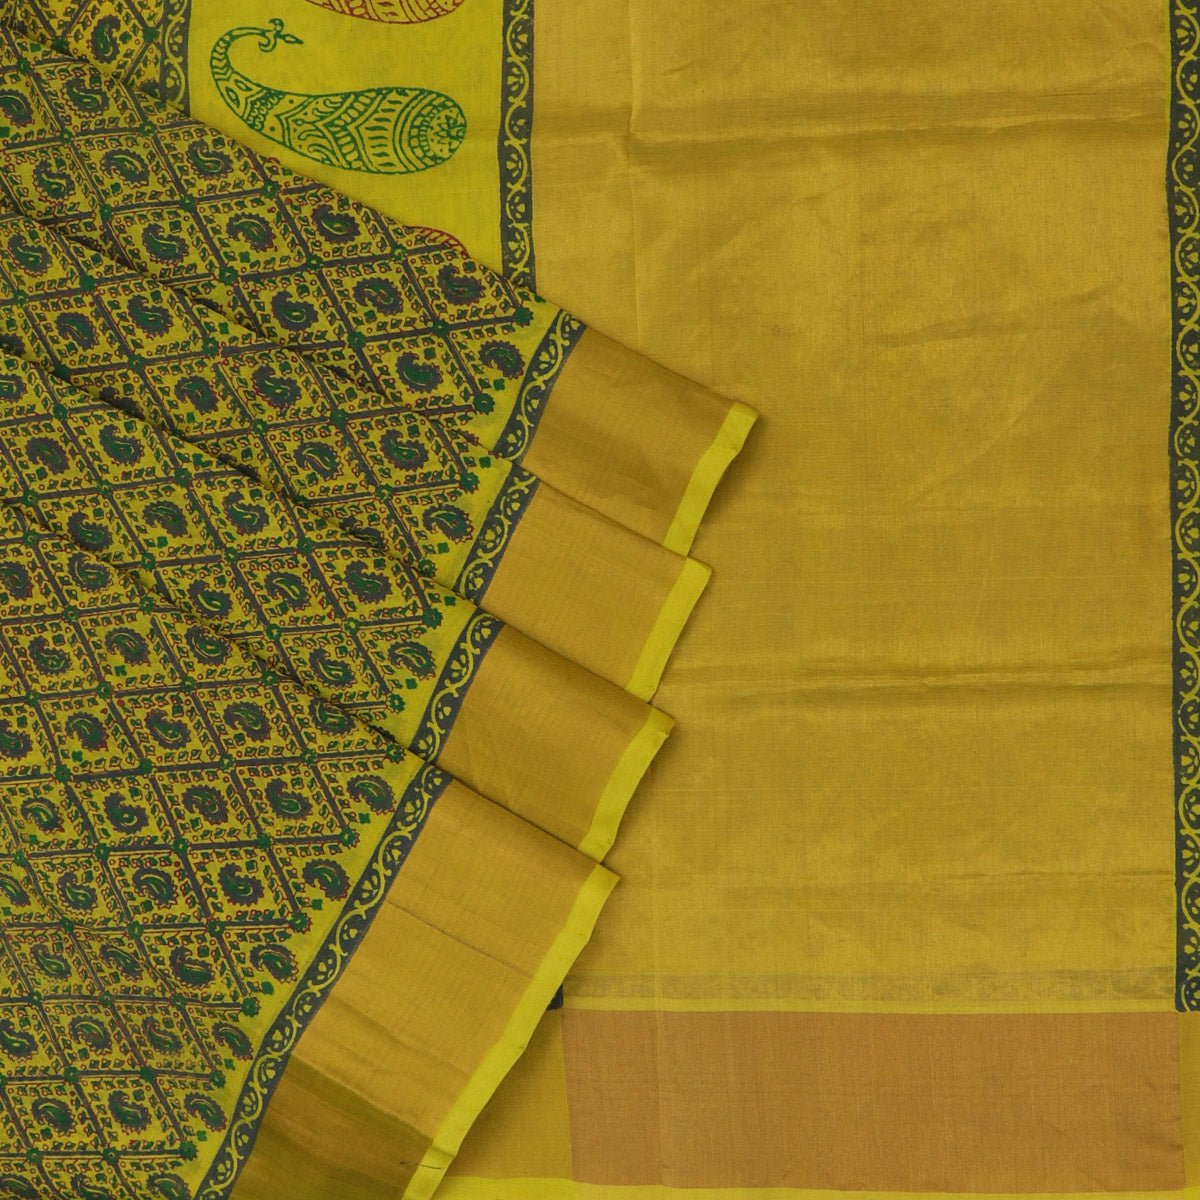 Printed Silk Cotton Saree Yellow and Green with Zari border